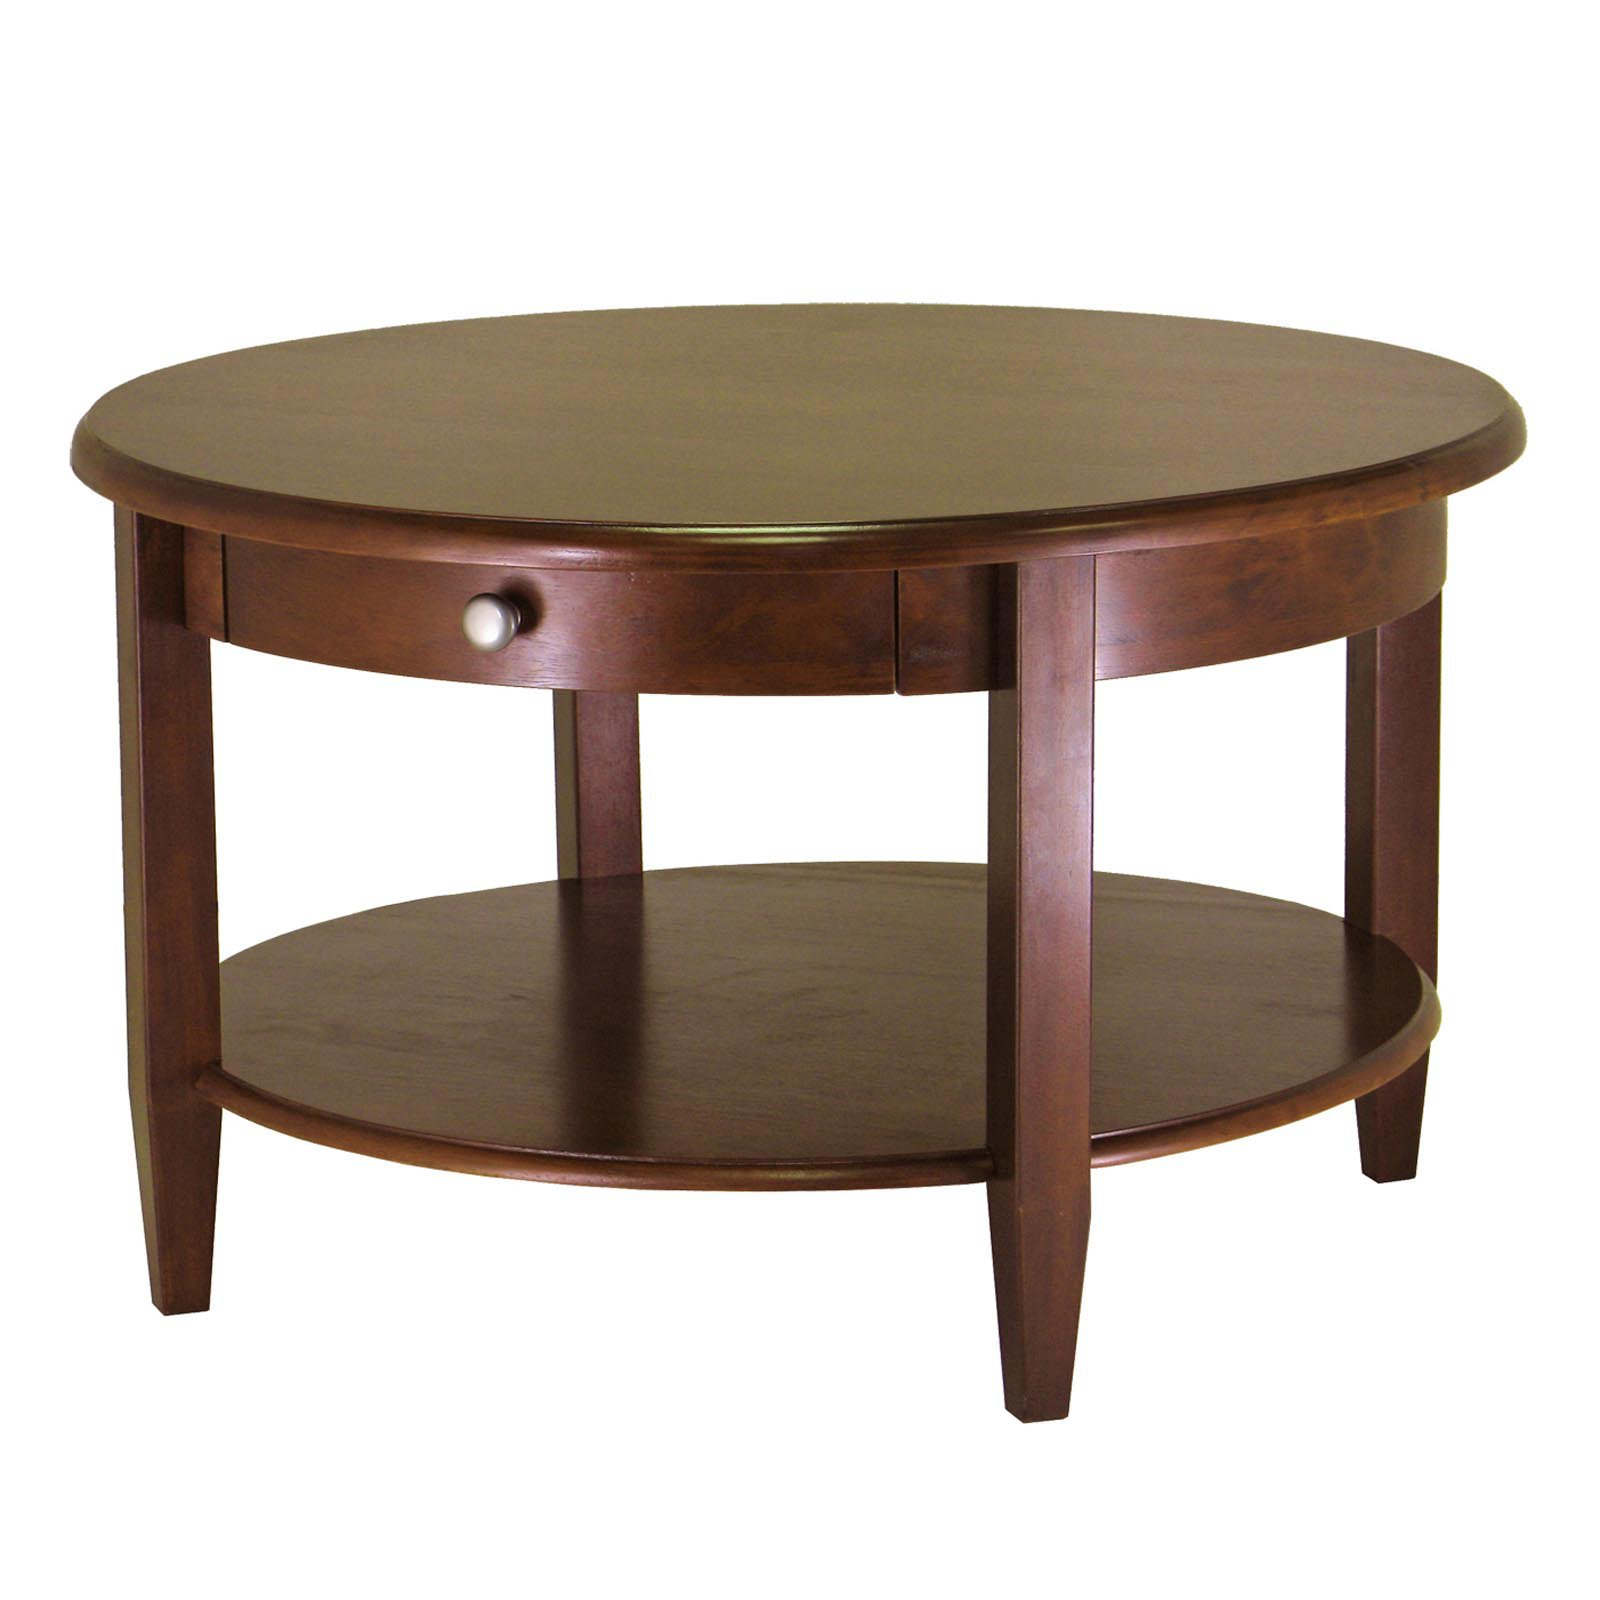 probably outrageous fun round coffee table with end tables concord master oval kitchen target patio cushions dimensions discontinued ashley bedroom furniture bath and beyond twin